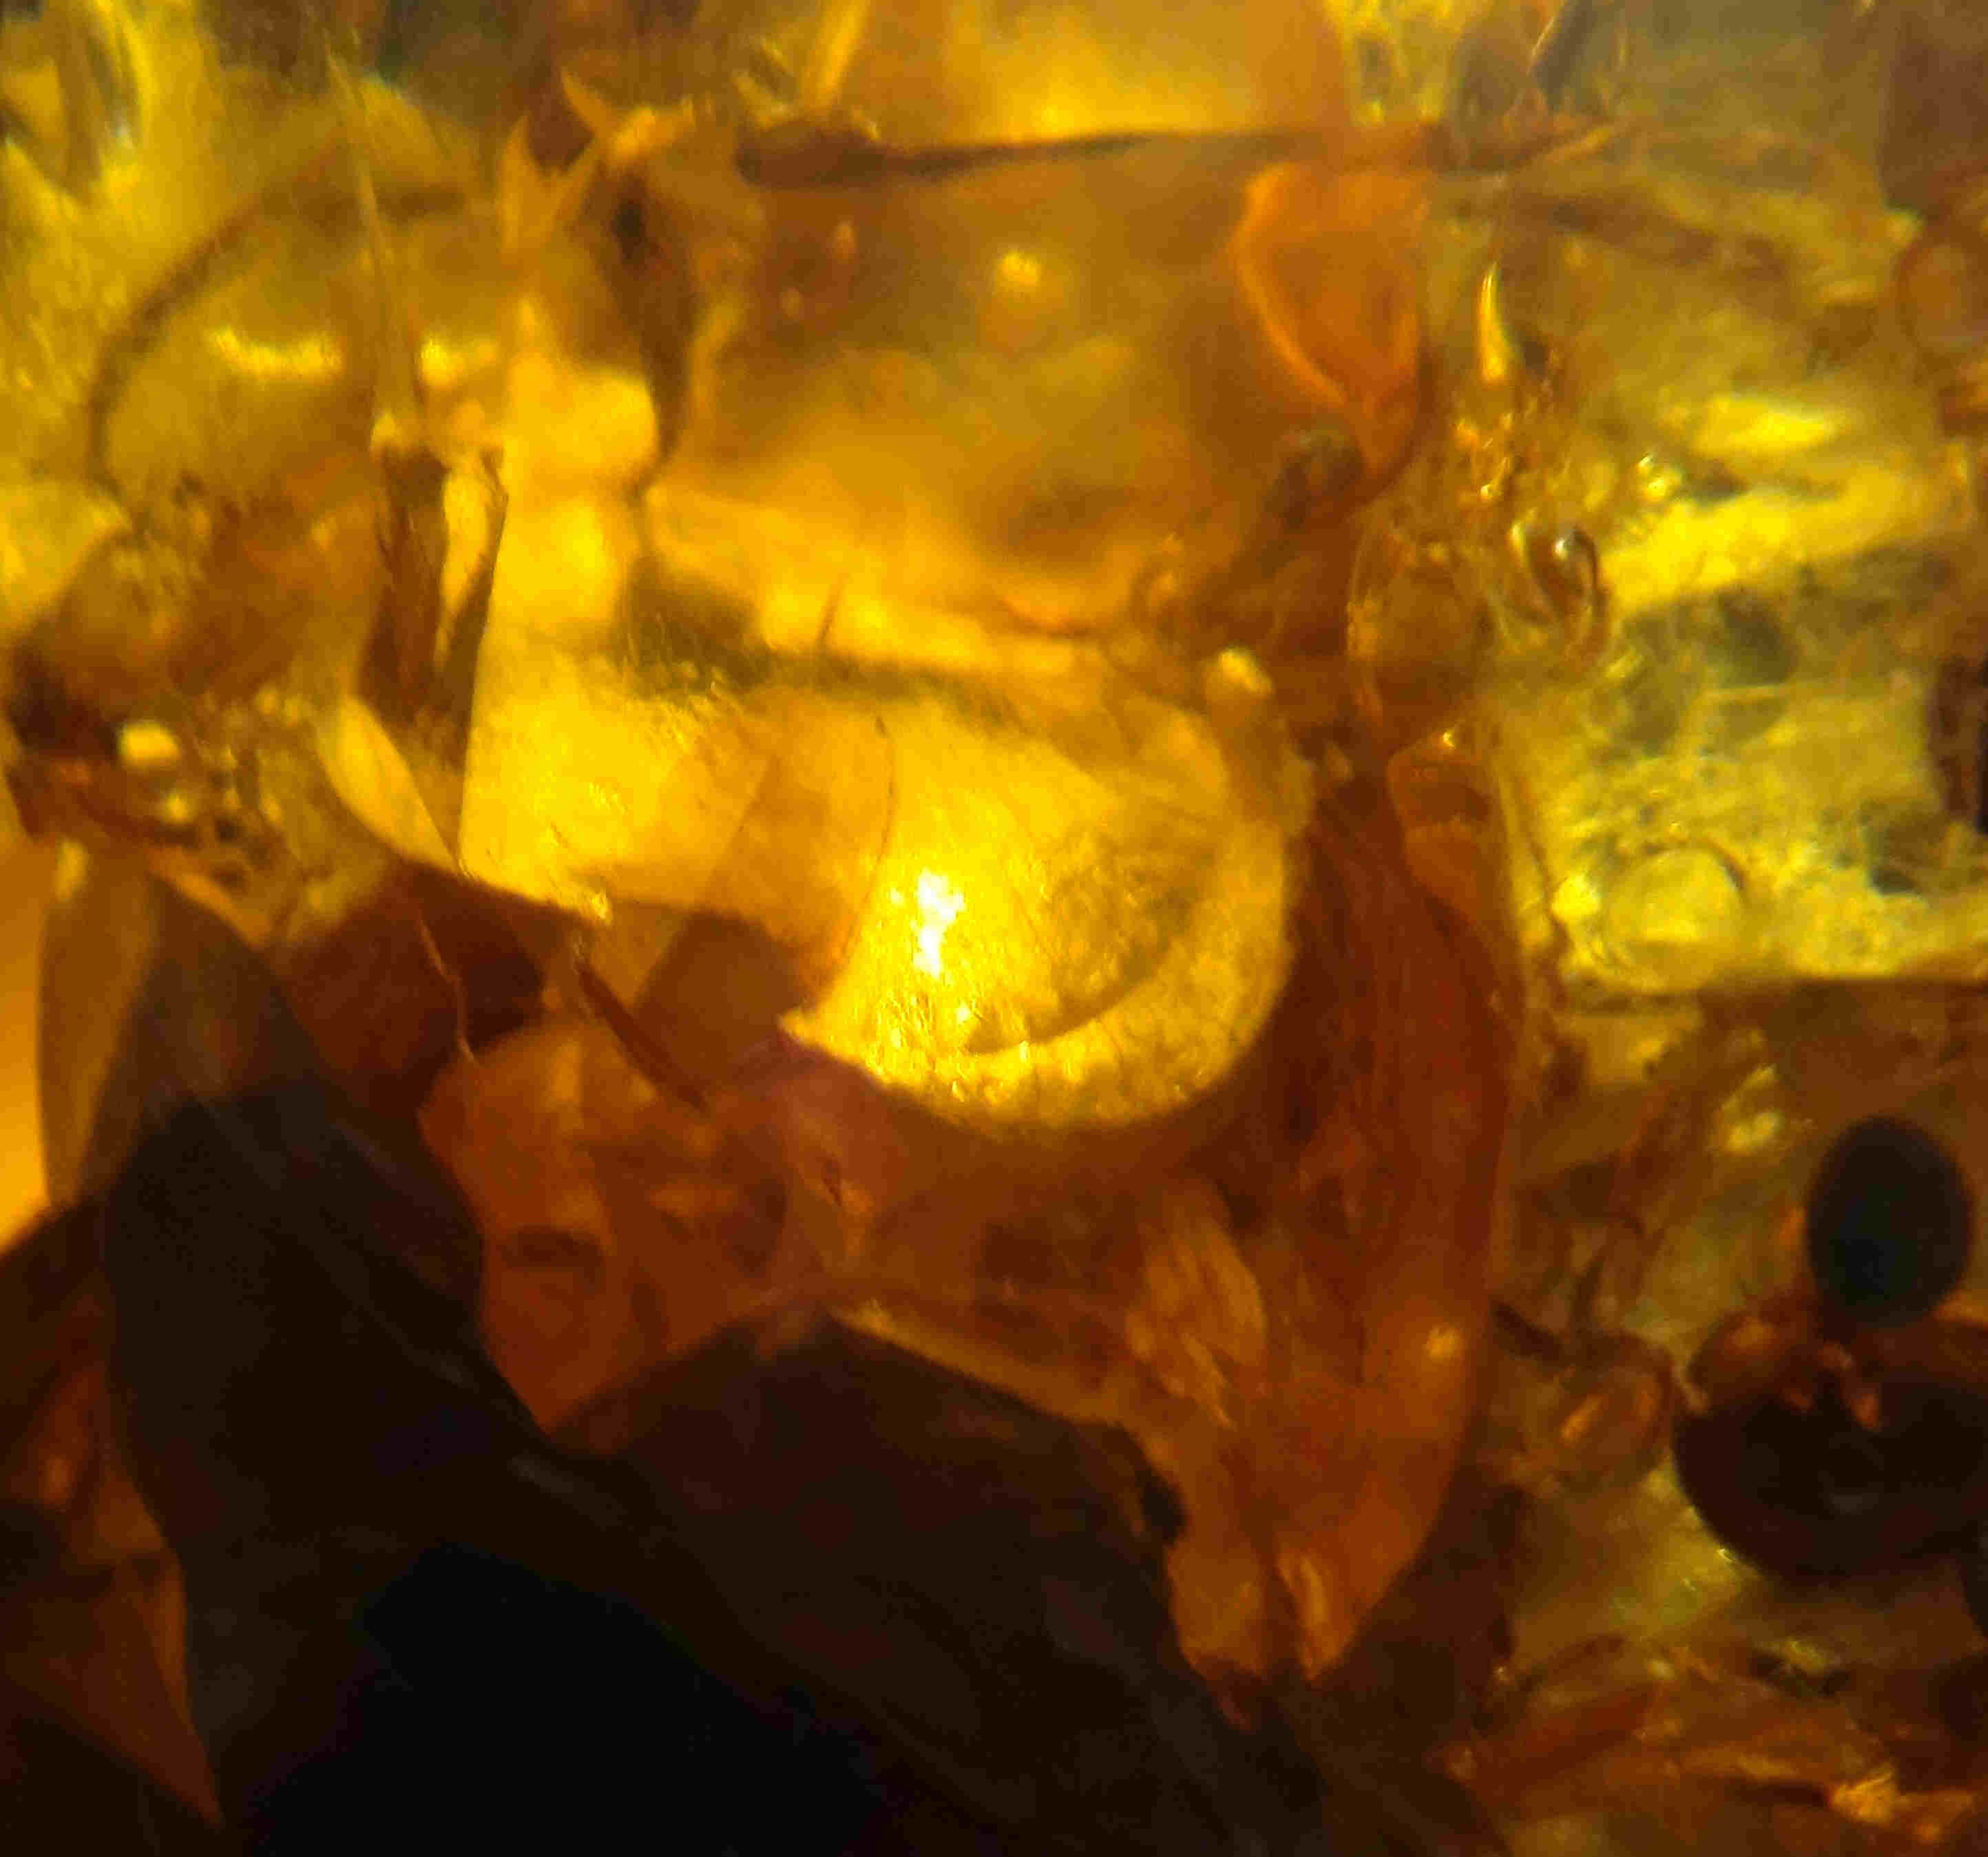 Potential 100 million year old Pterosaur in amber from Myanmar